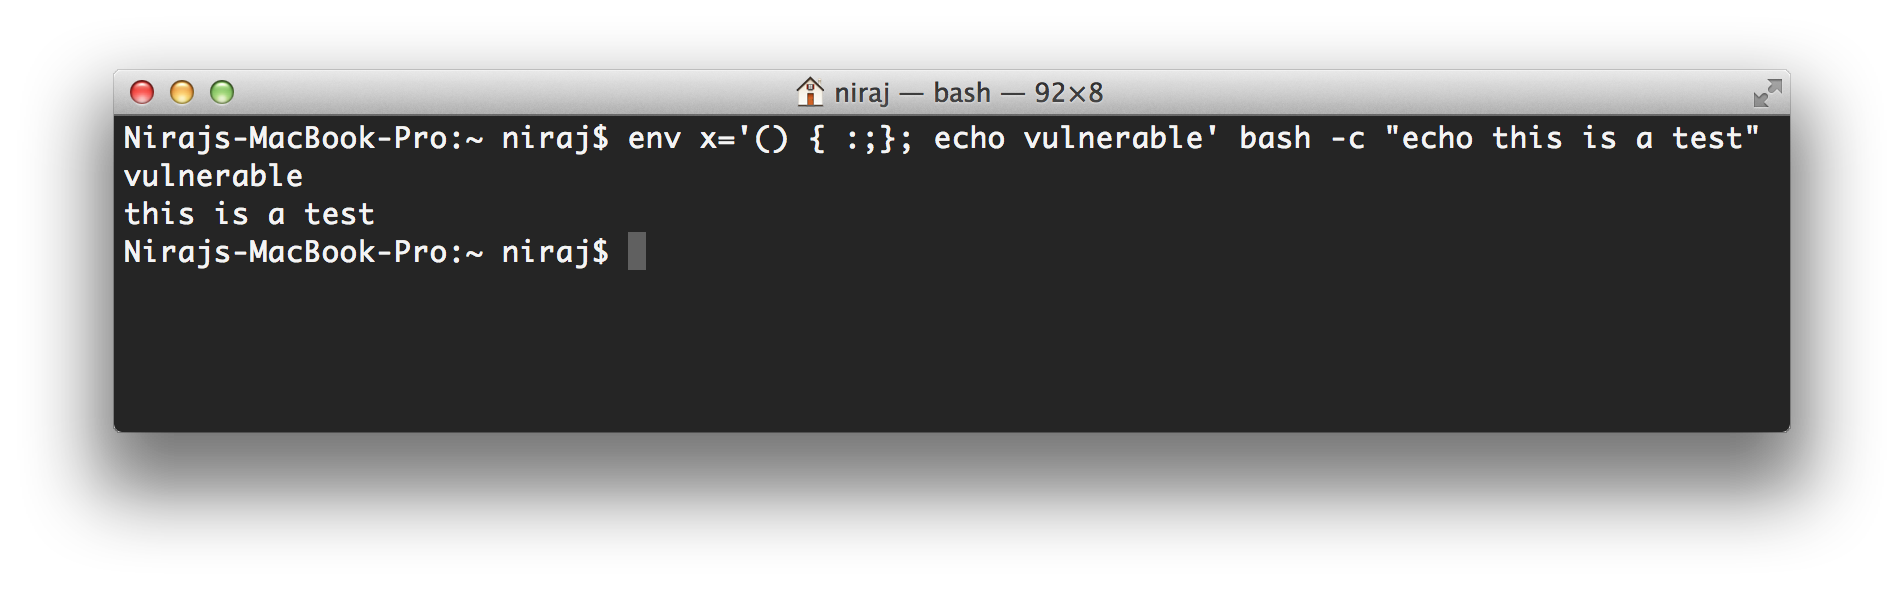 Bash Mac OS X Version Vulnerable